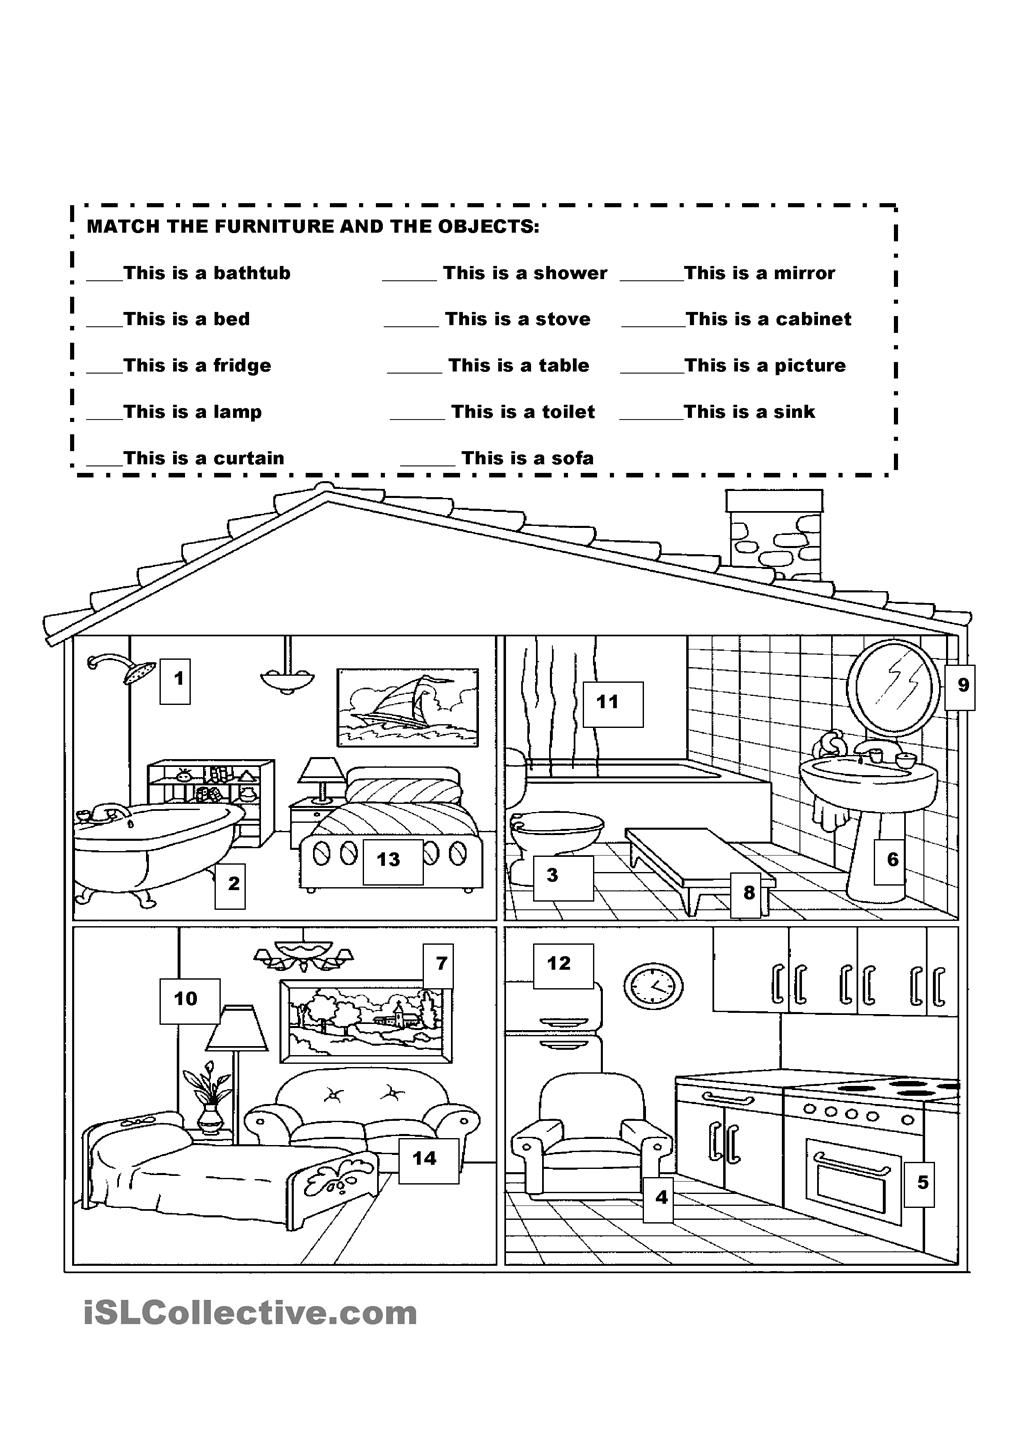 Furniture in the house | Angol/English | Pinterest | House ...